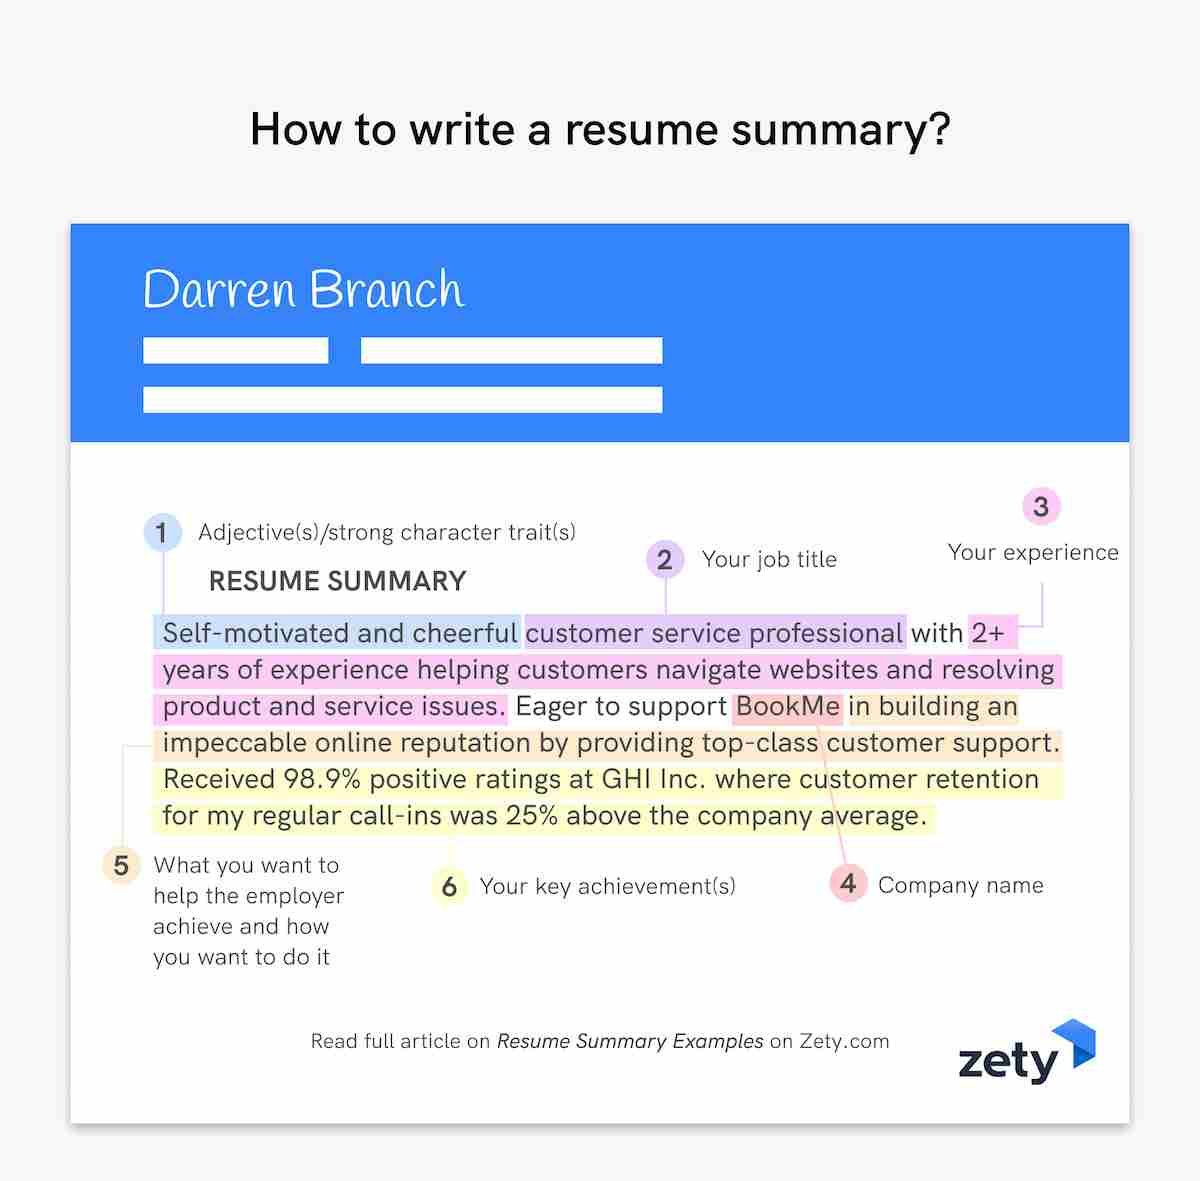 How to write a resume summary: visual example